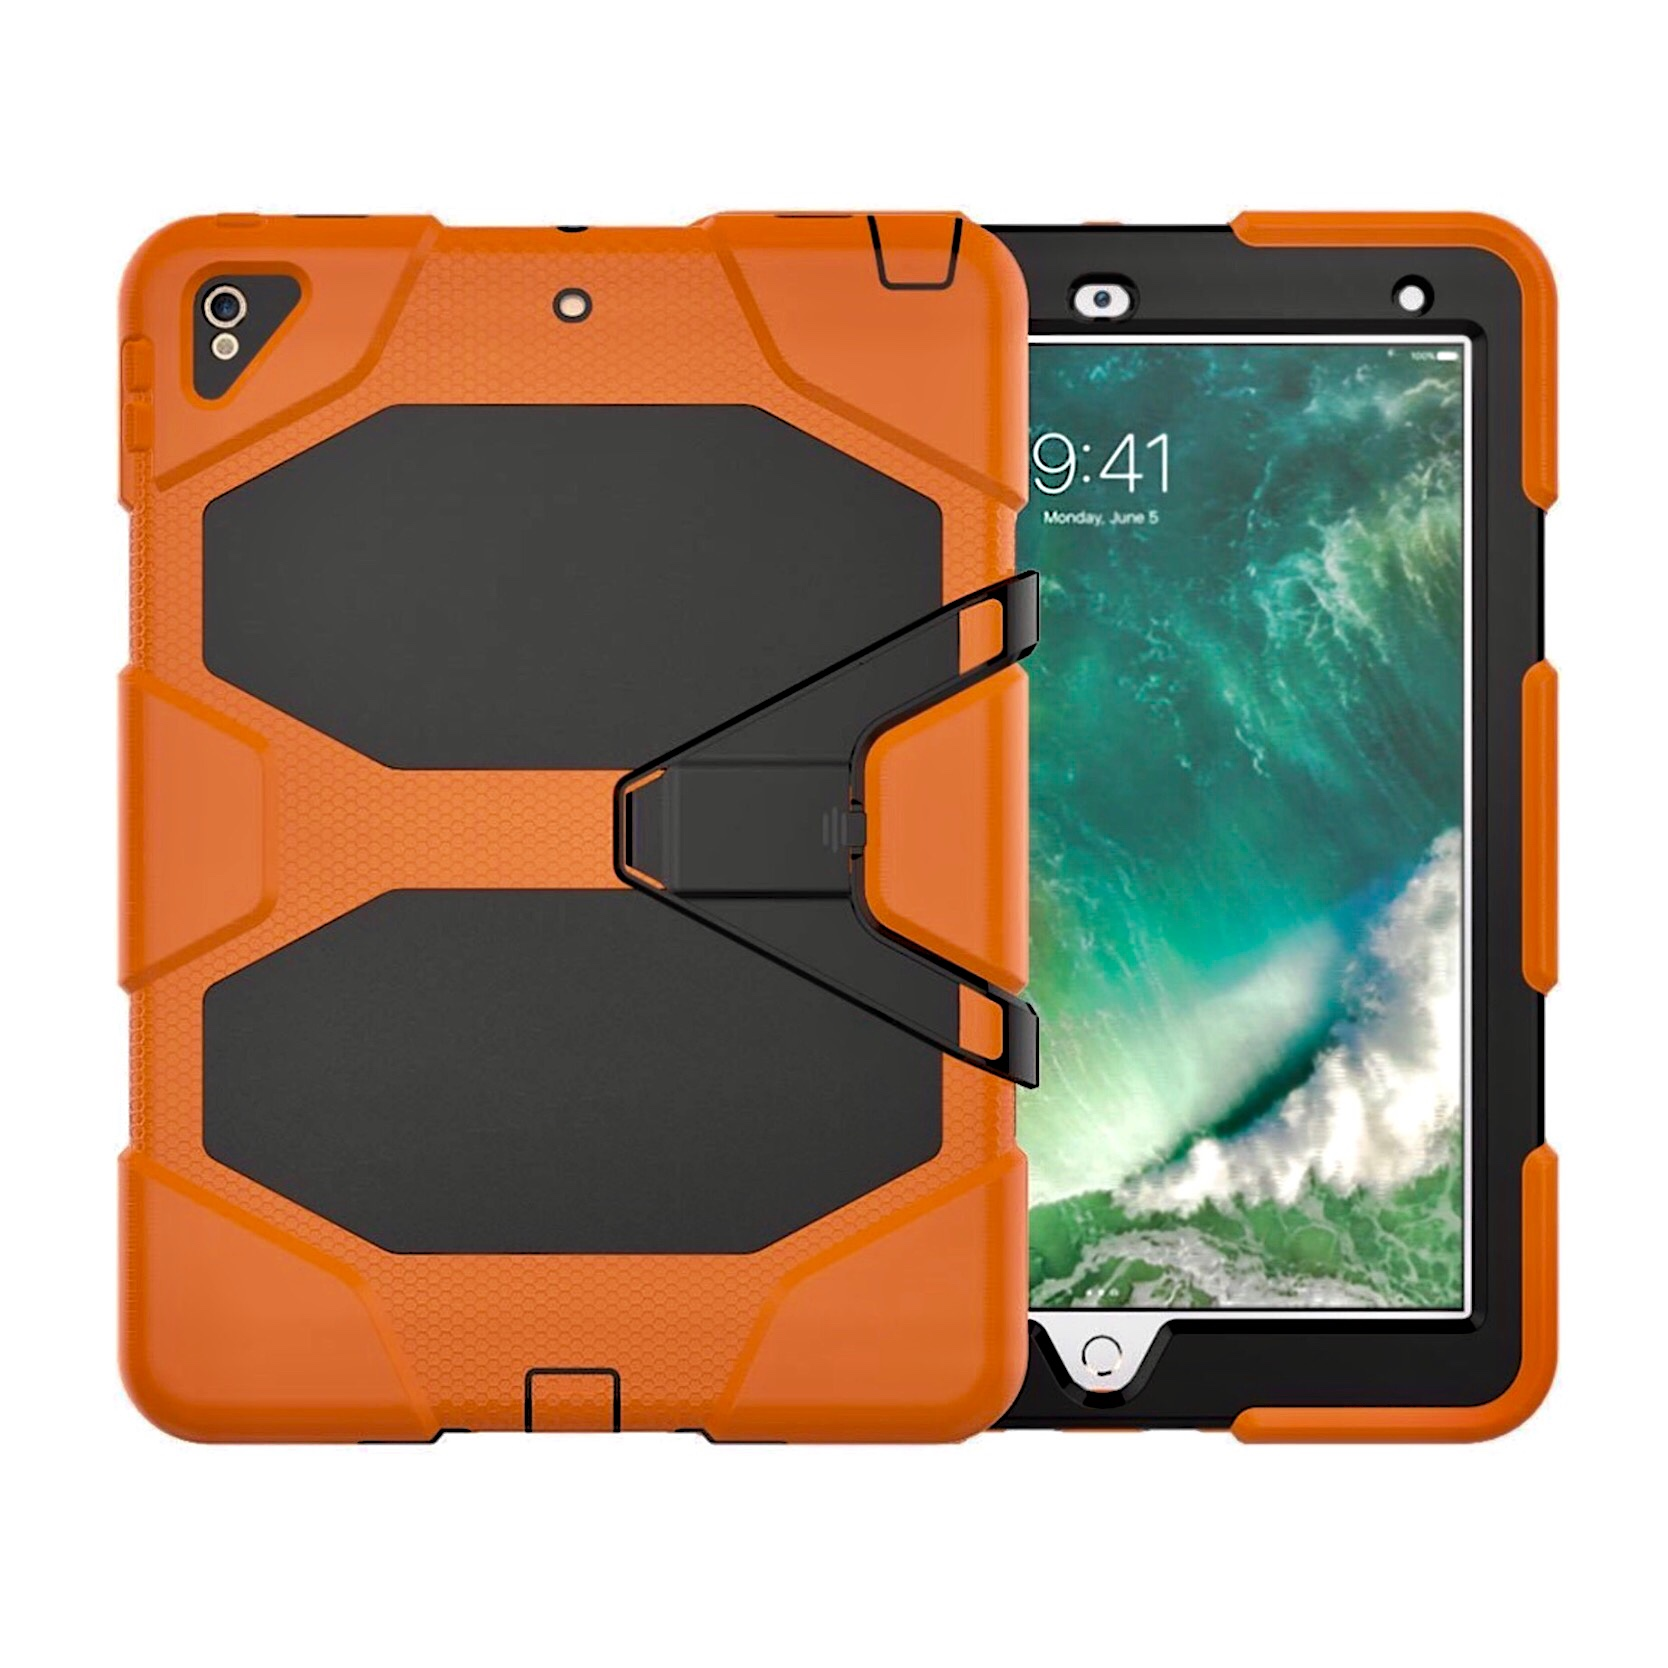 Coque Protection Professionnelle iPAD AIR 2019 10.5 Vegas Orange